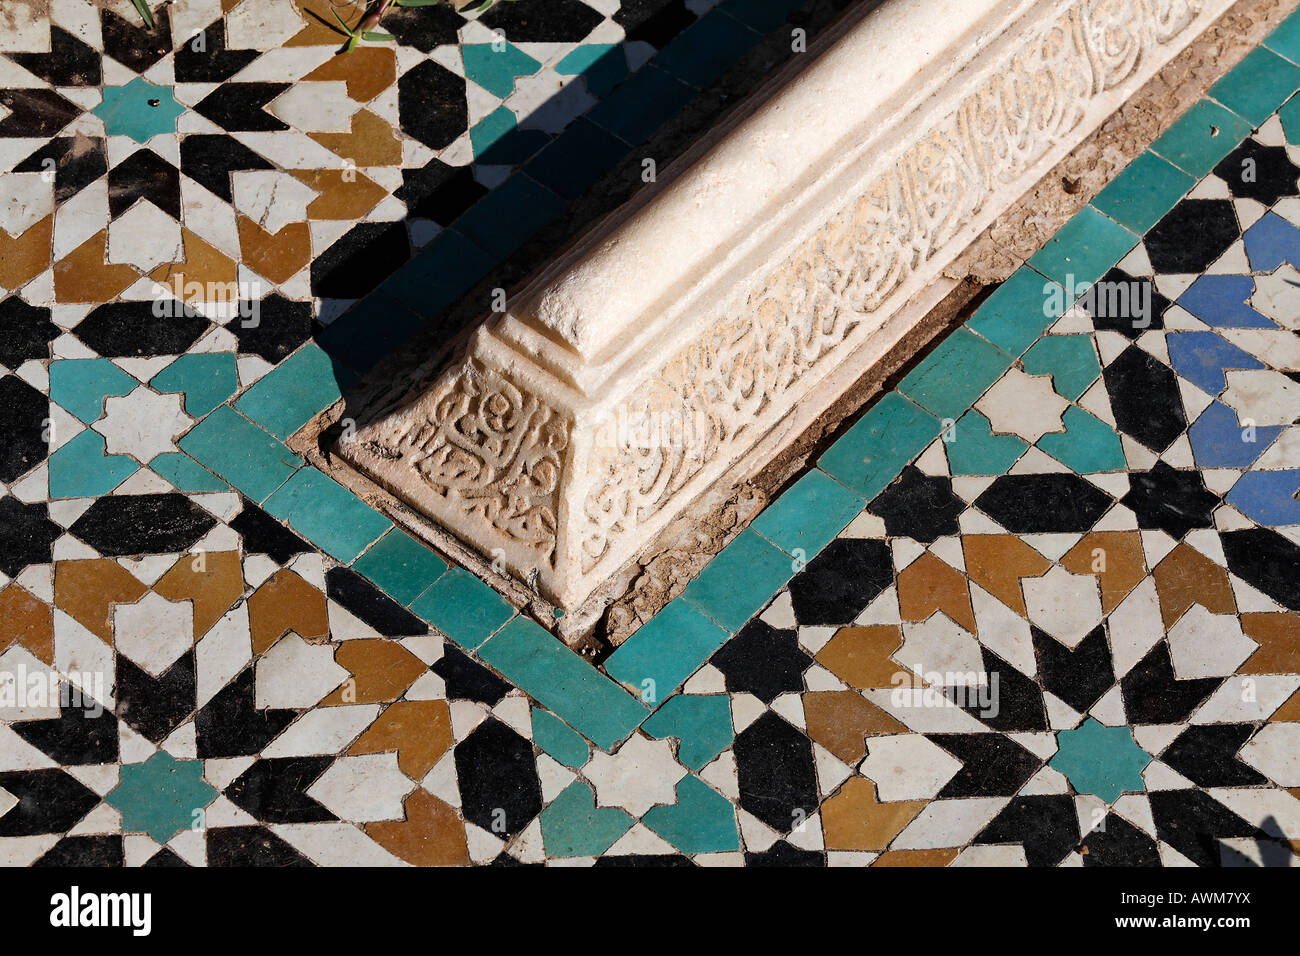 Arabic gravestone with arabesque inscription surrounded by coloured tiles, Saadien Tombs, Medina, Morocco, Africa - Stock Image